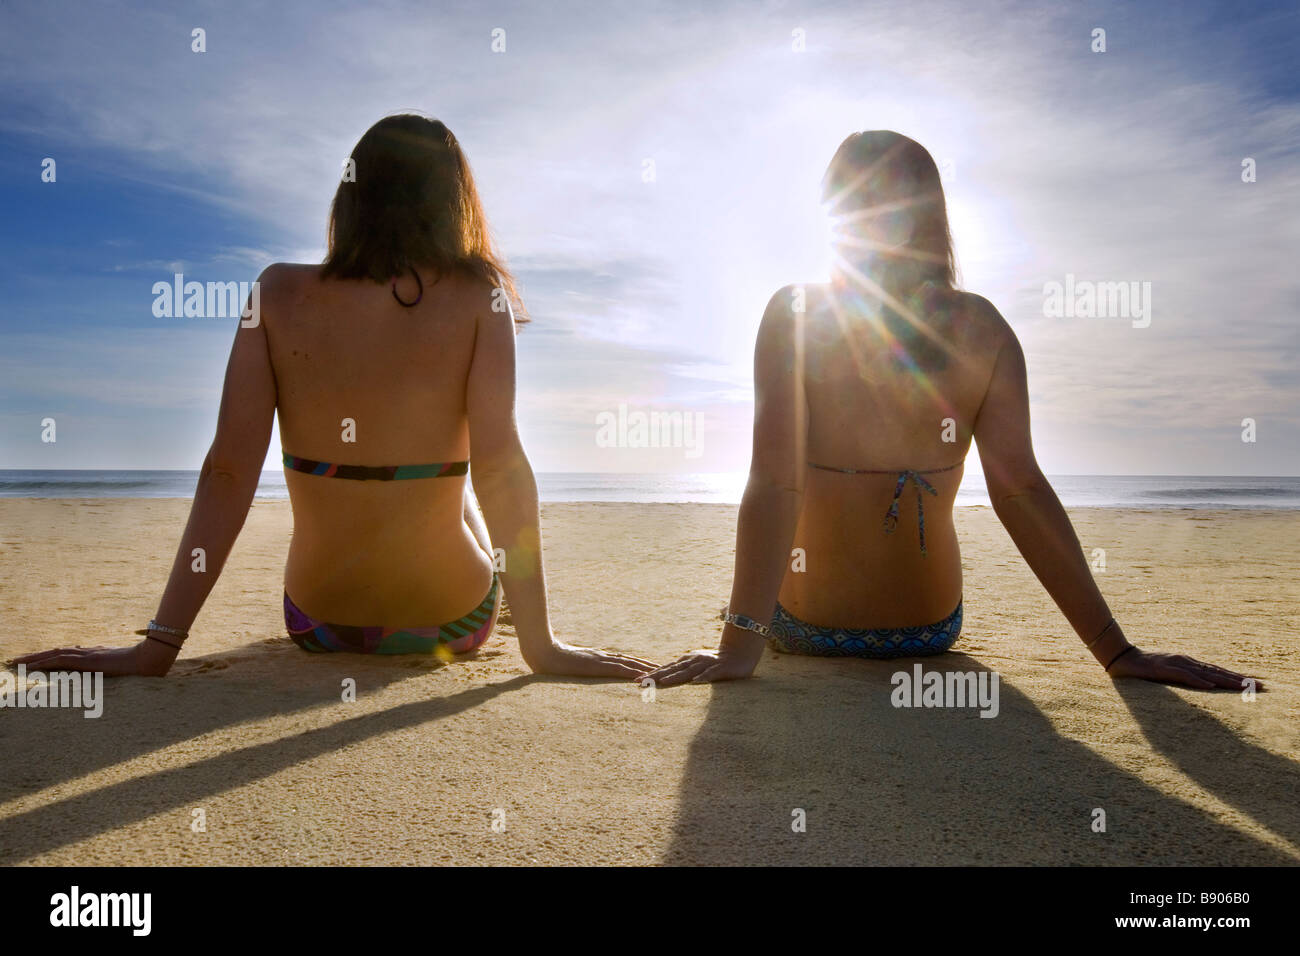 Two girls on the beach - Stock Image